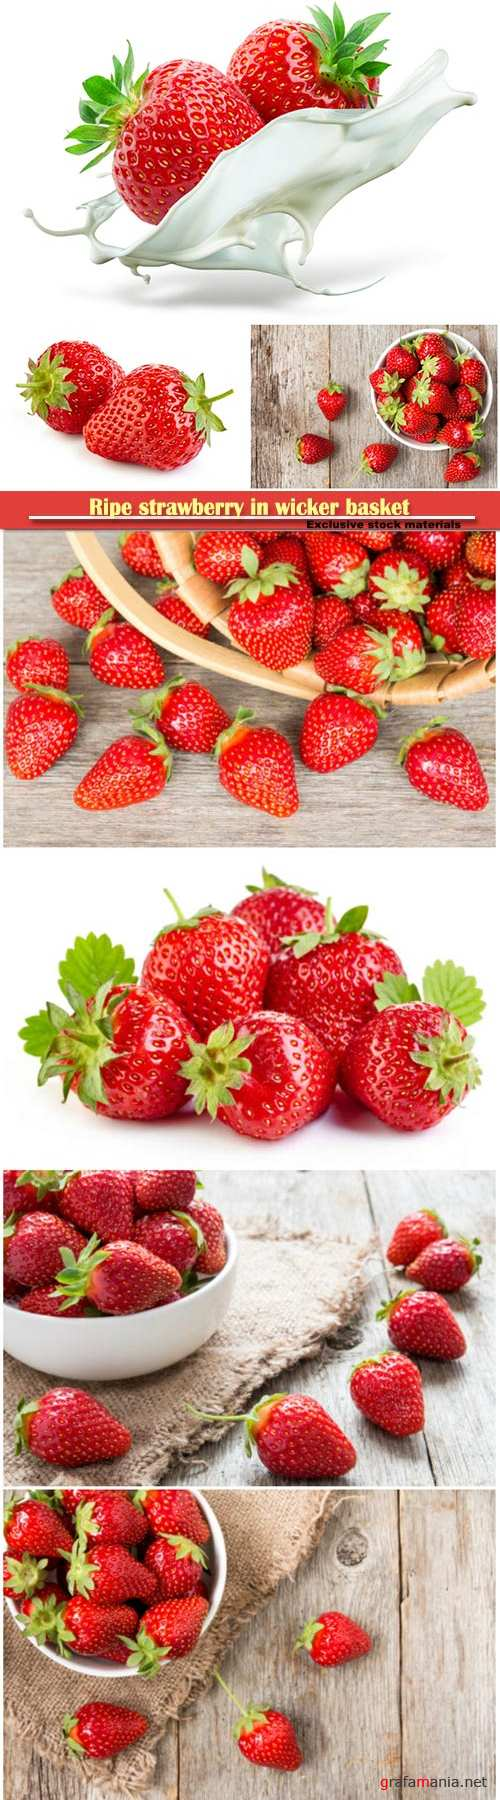 Ripe strawberry in wicker basket on a wooden background